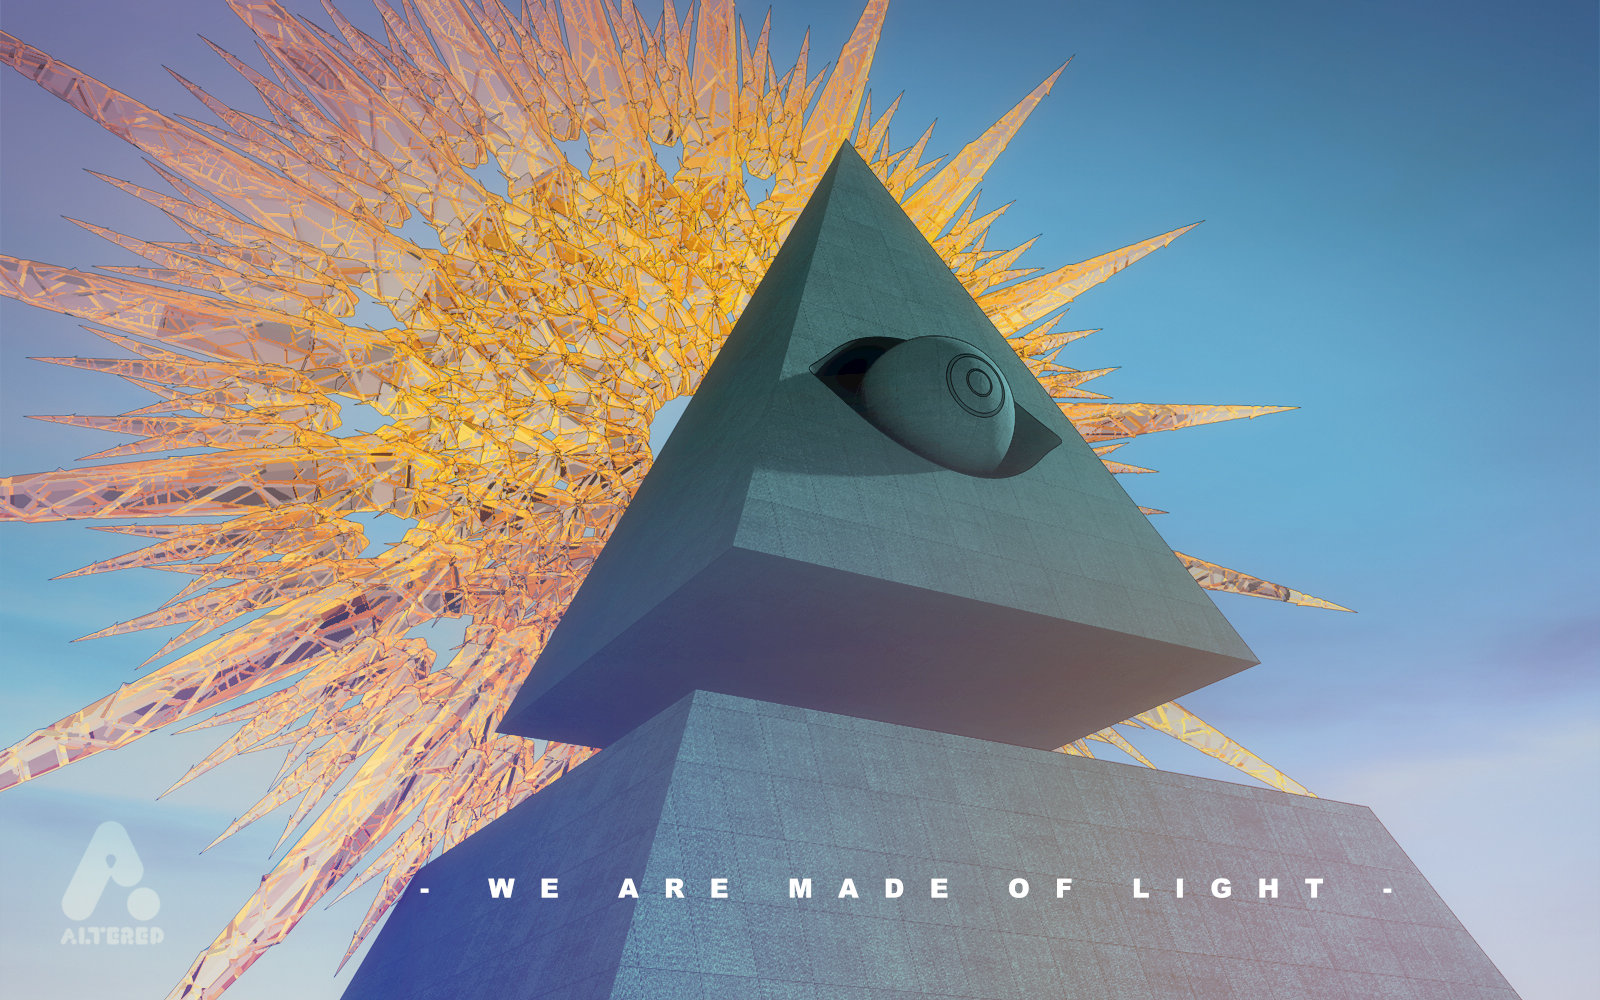 3D CG art illustration of the all seeing eye with crystal halo, design by lee robinson